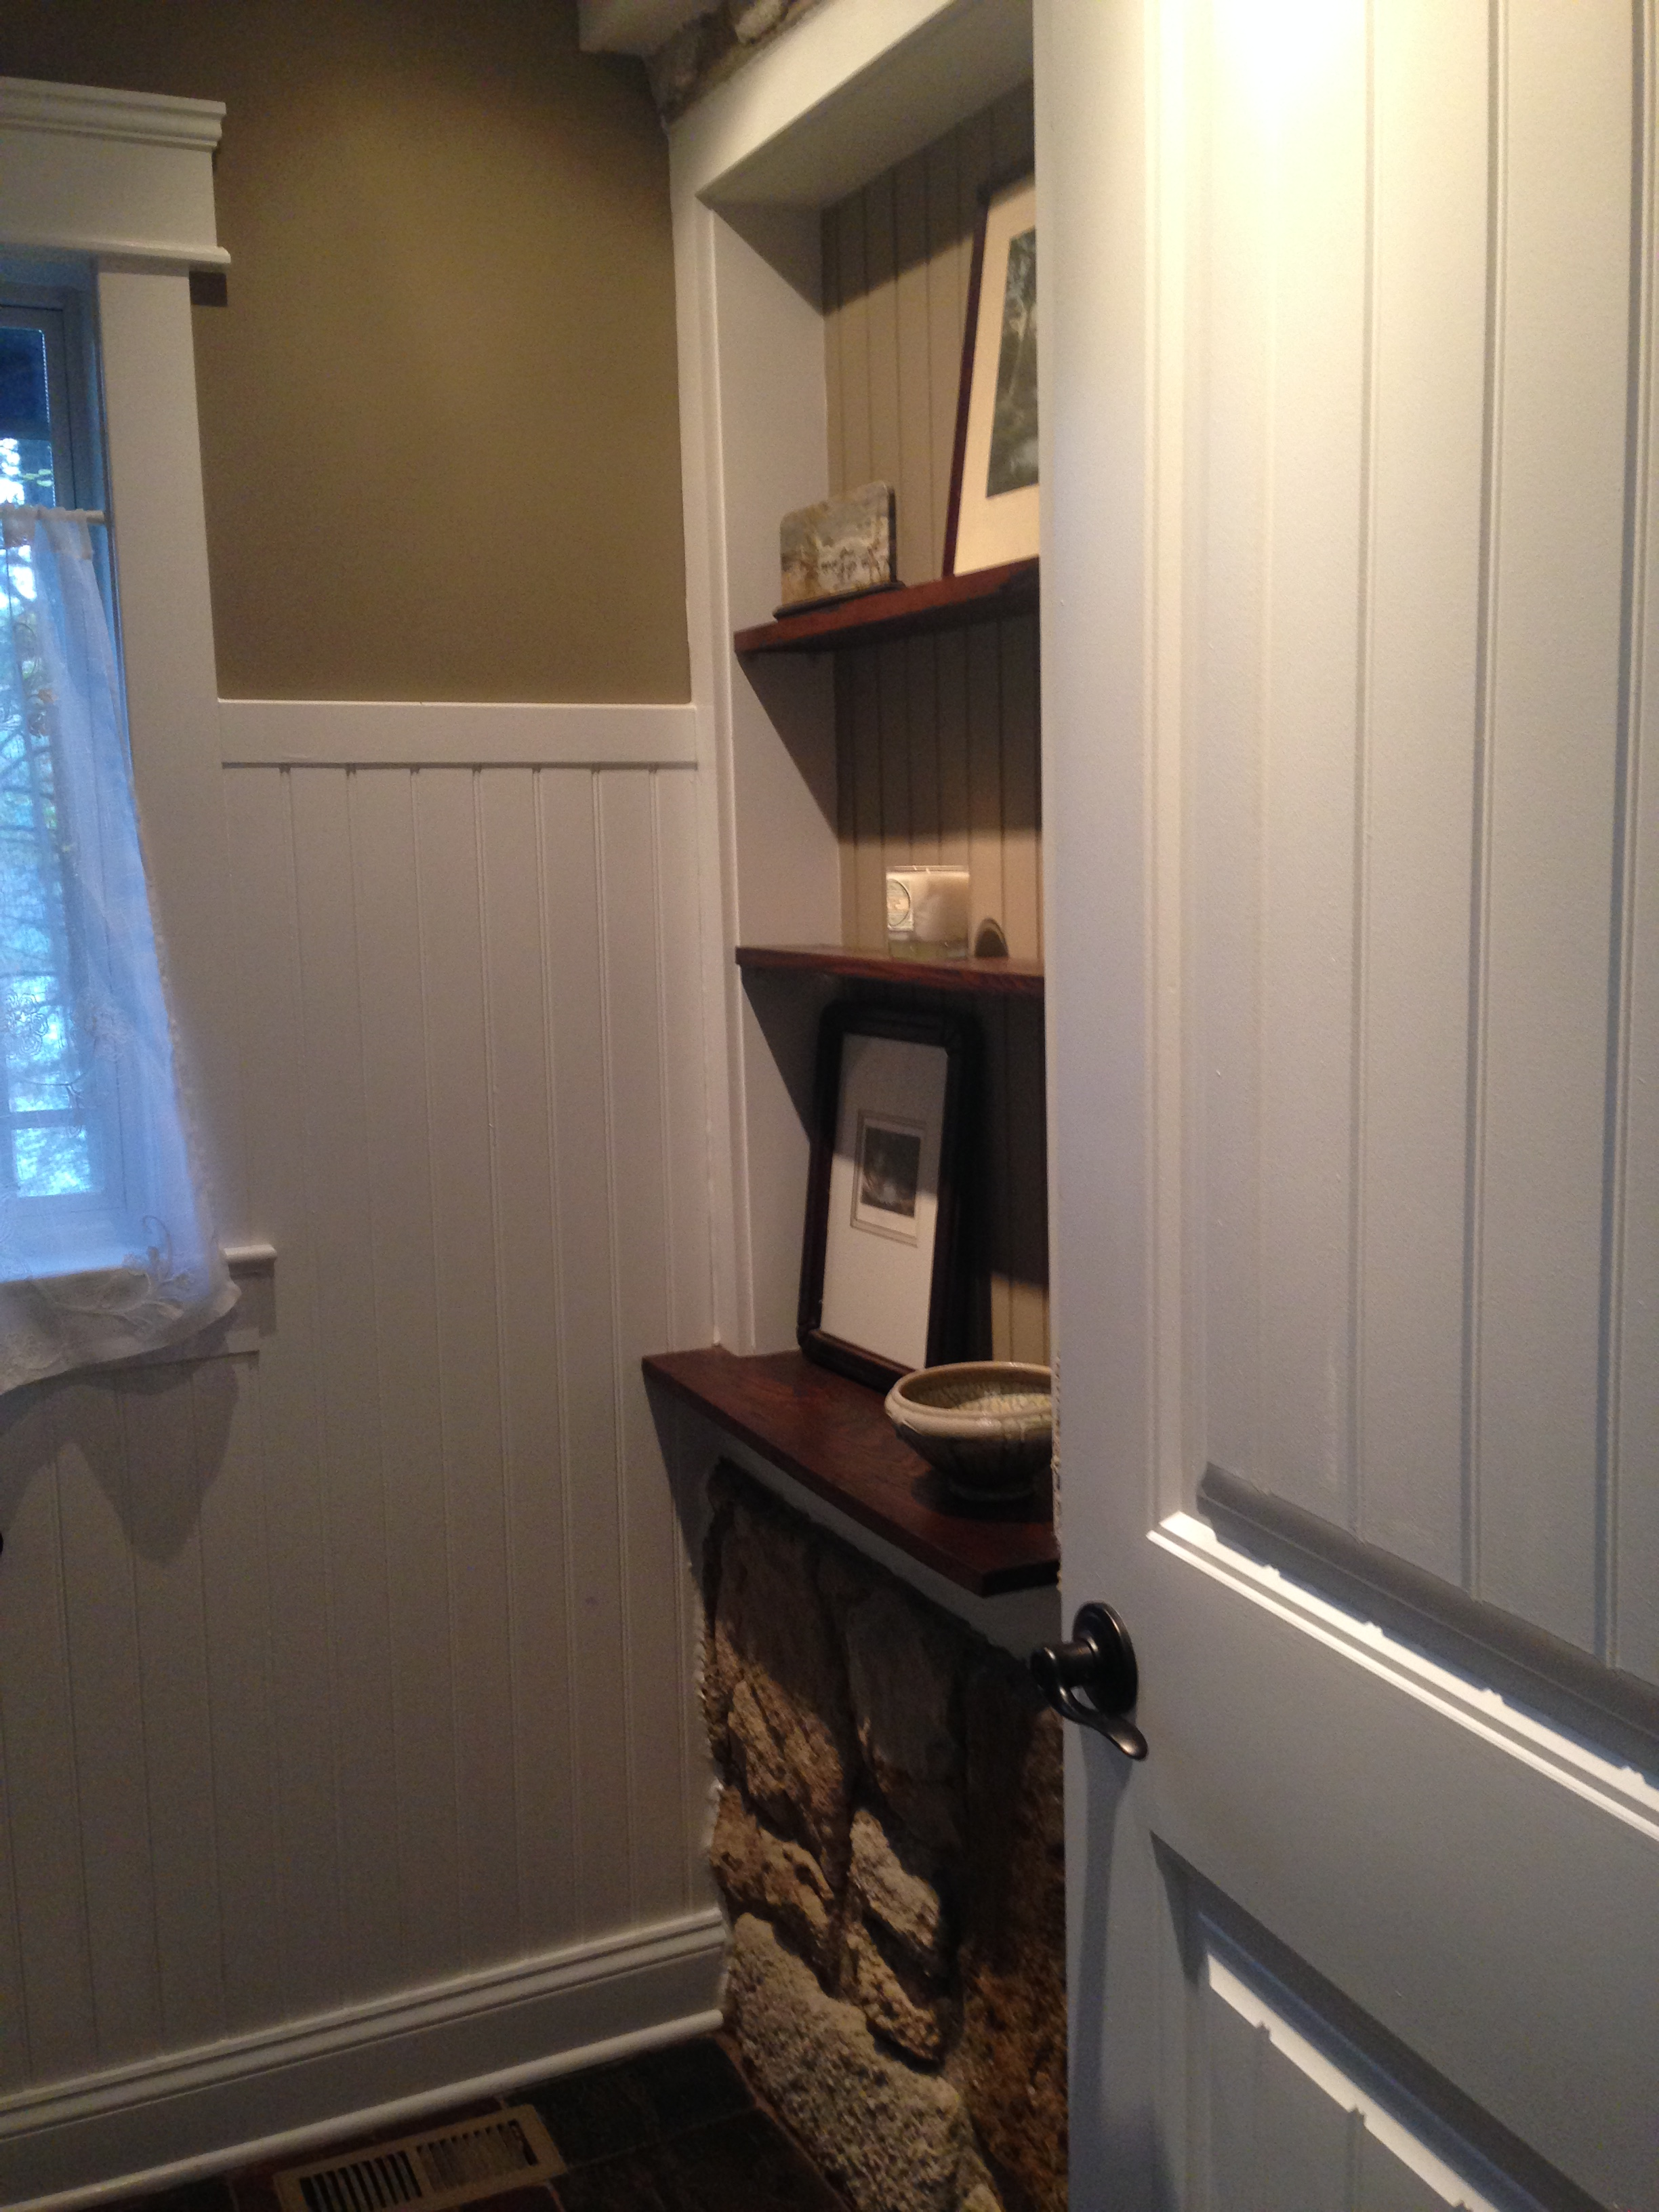 The builder/owner worked wonders with this original window opening, which is now in the new powder room and serves as a beautiful display niche opposite the toilet.